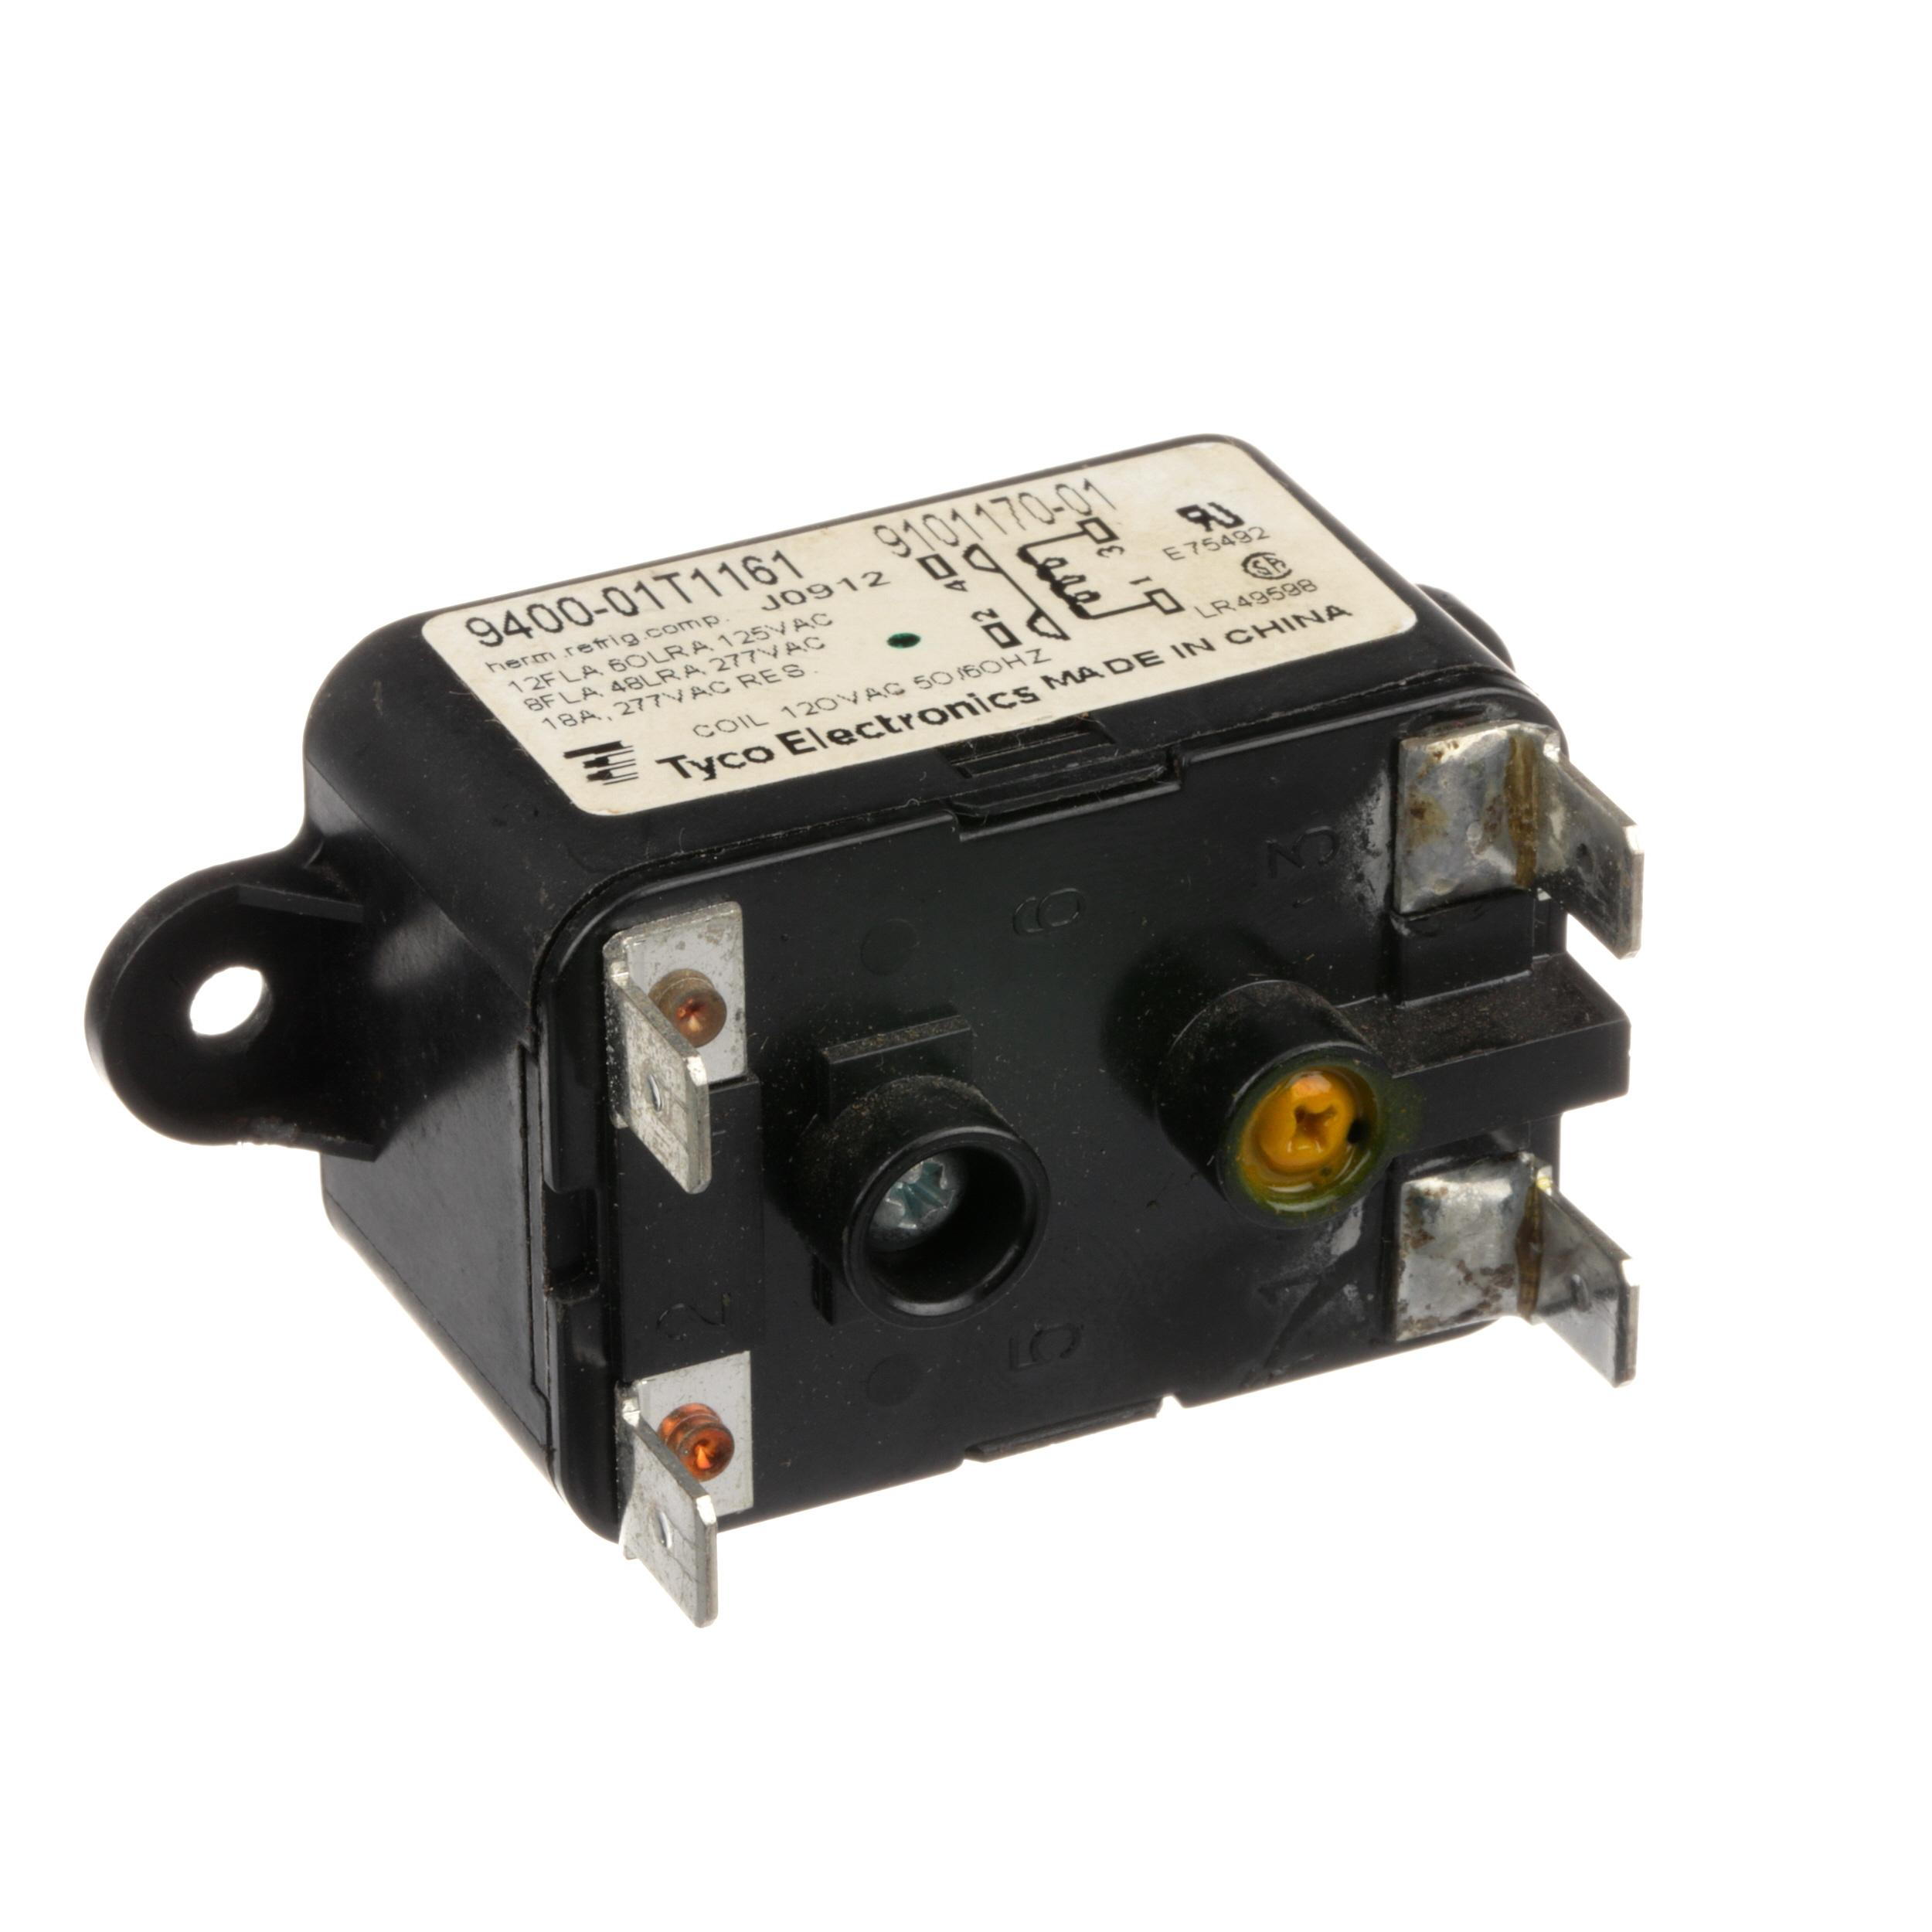 ICE-O-MATIC RELAY; AUGER MOTOR